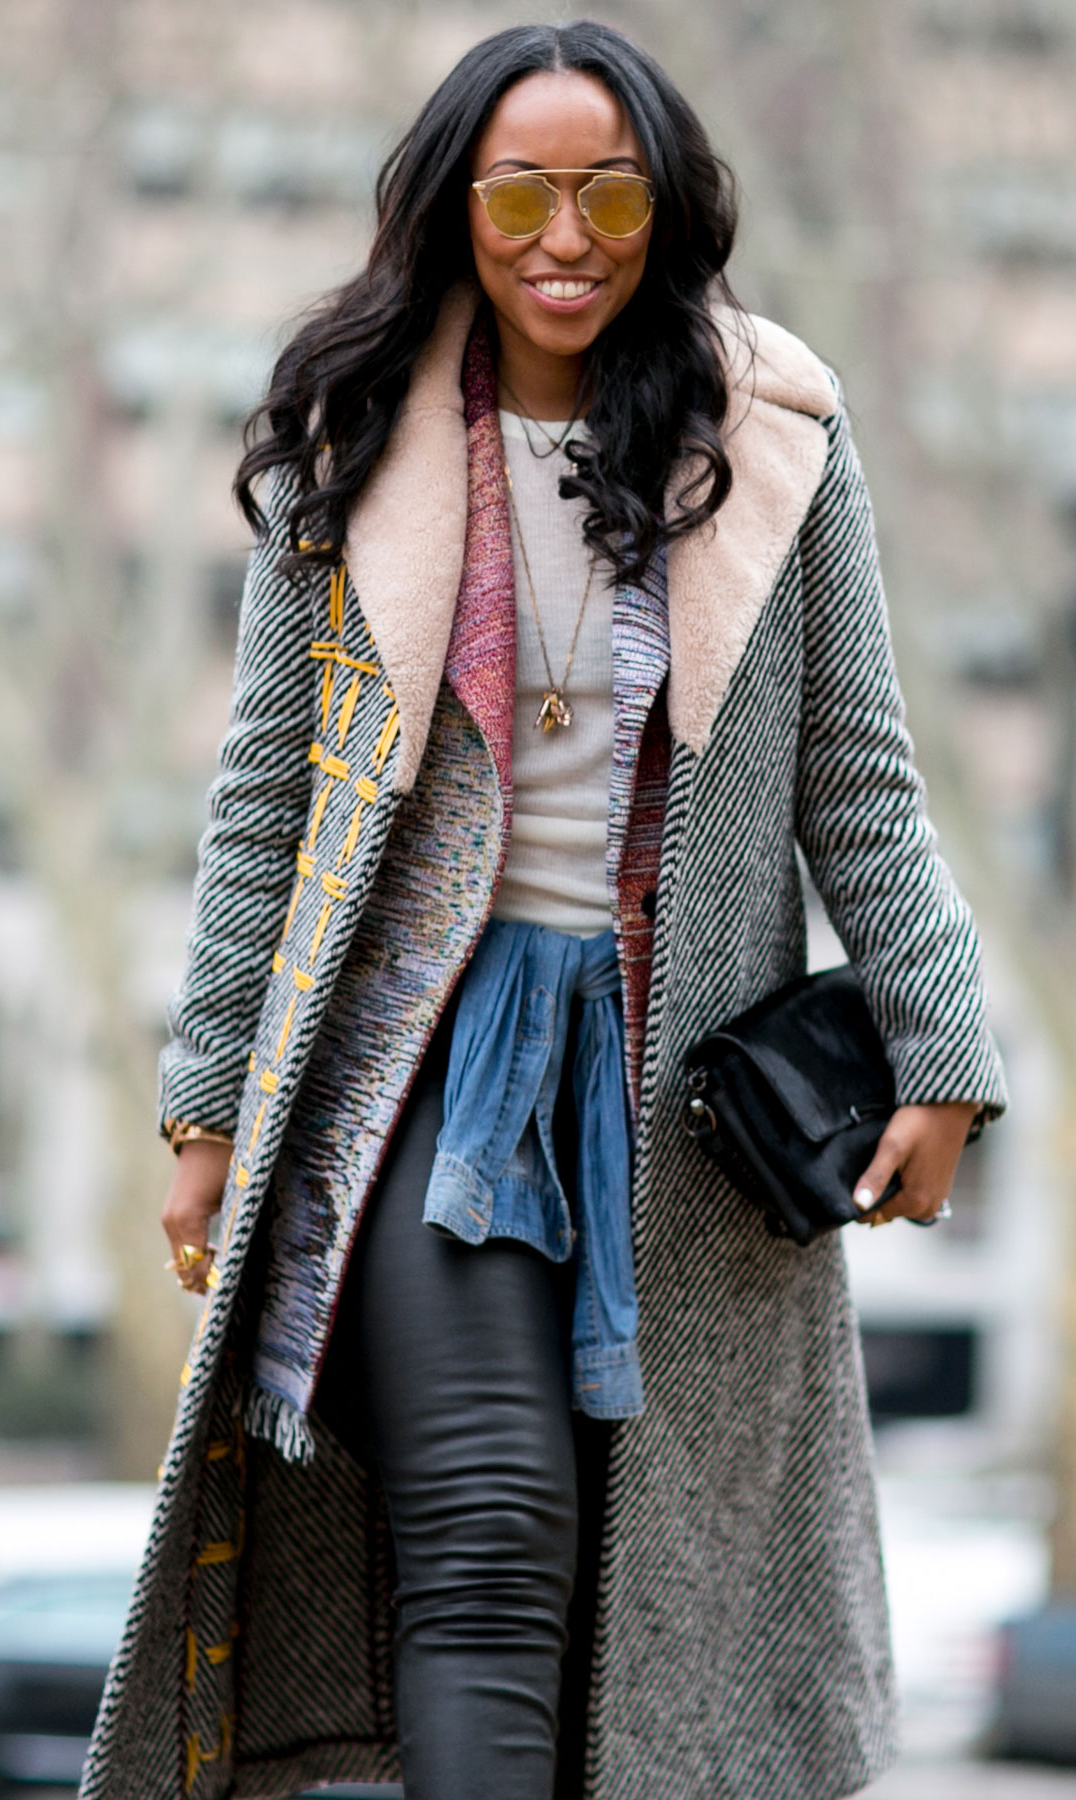 The Street Style Hot Enough to Make You Forget the Cold